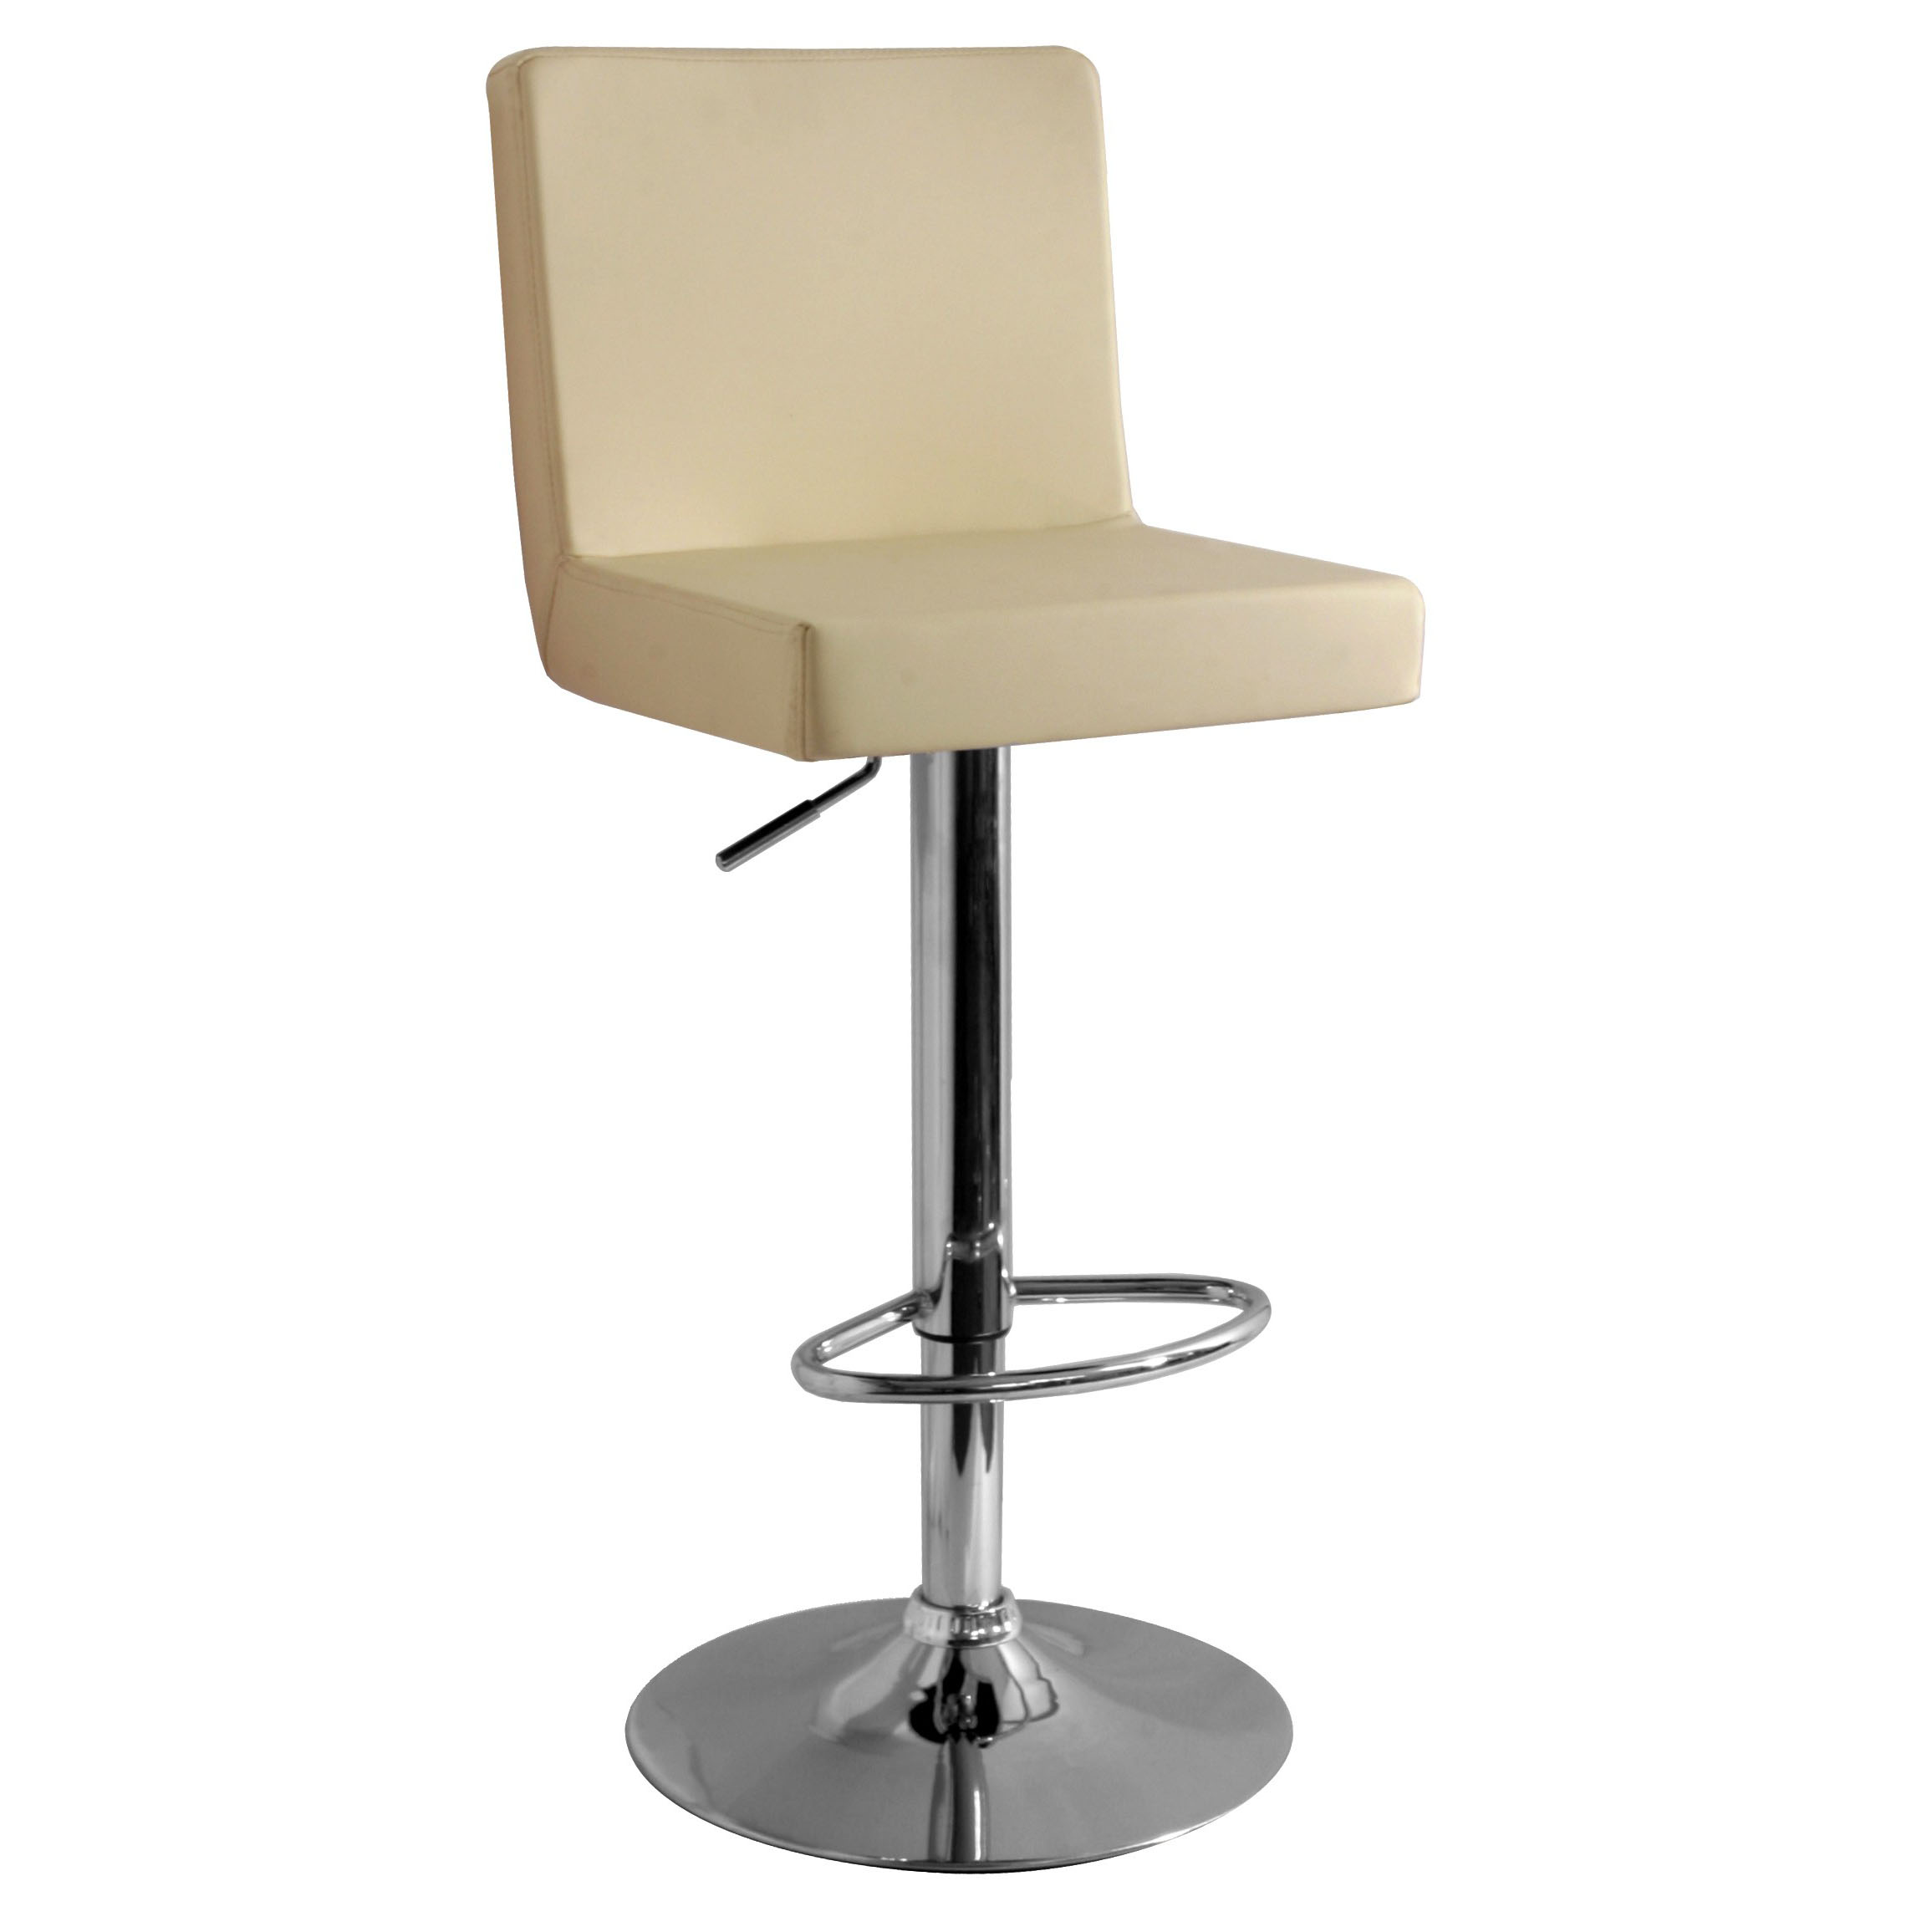 Alessa Bar Stool - Cream